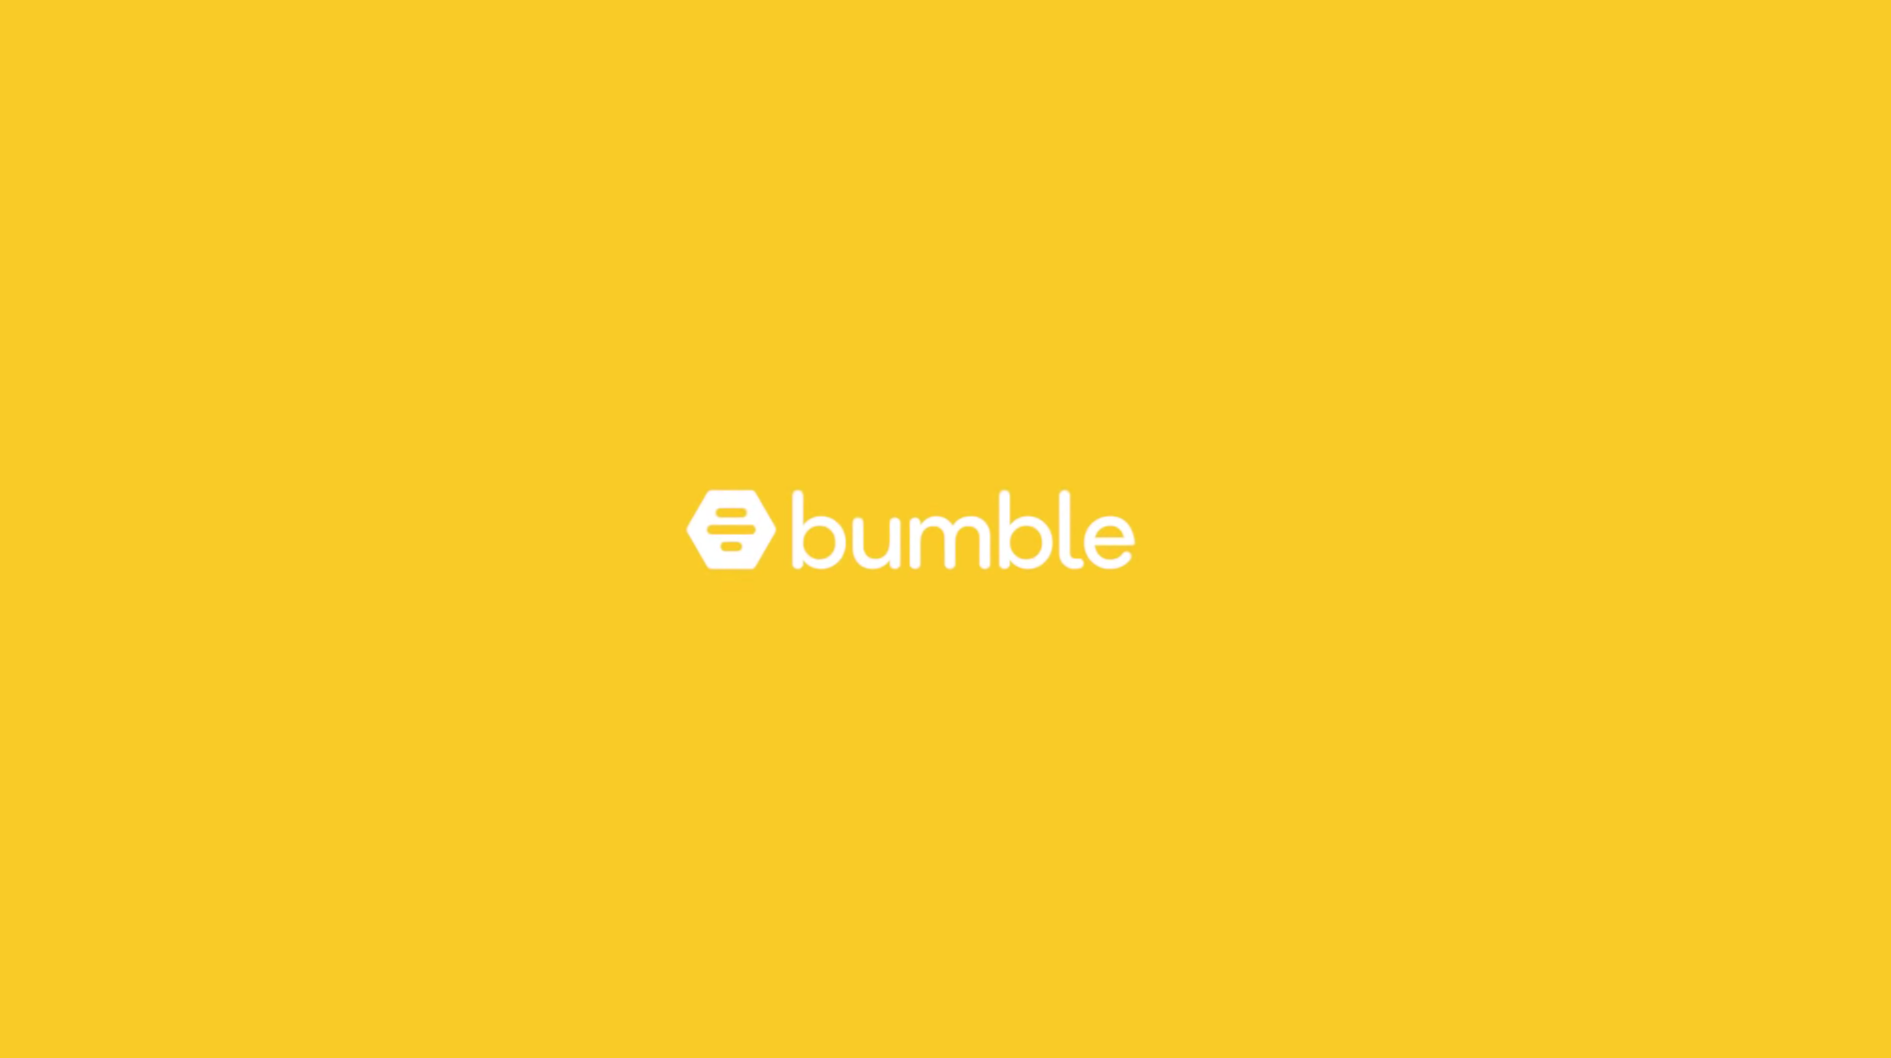 Goldman Sachs and Citigroup Assist With Bumble's Approaching IPO